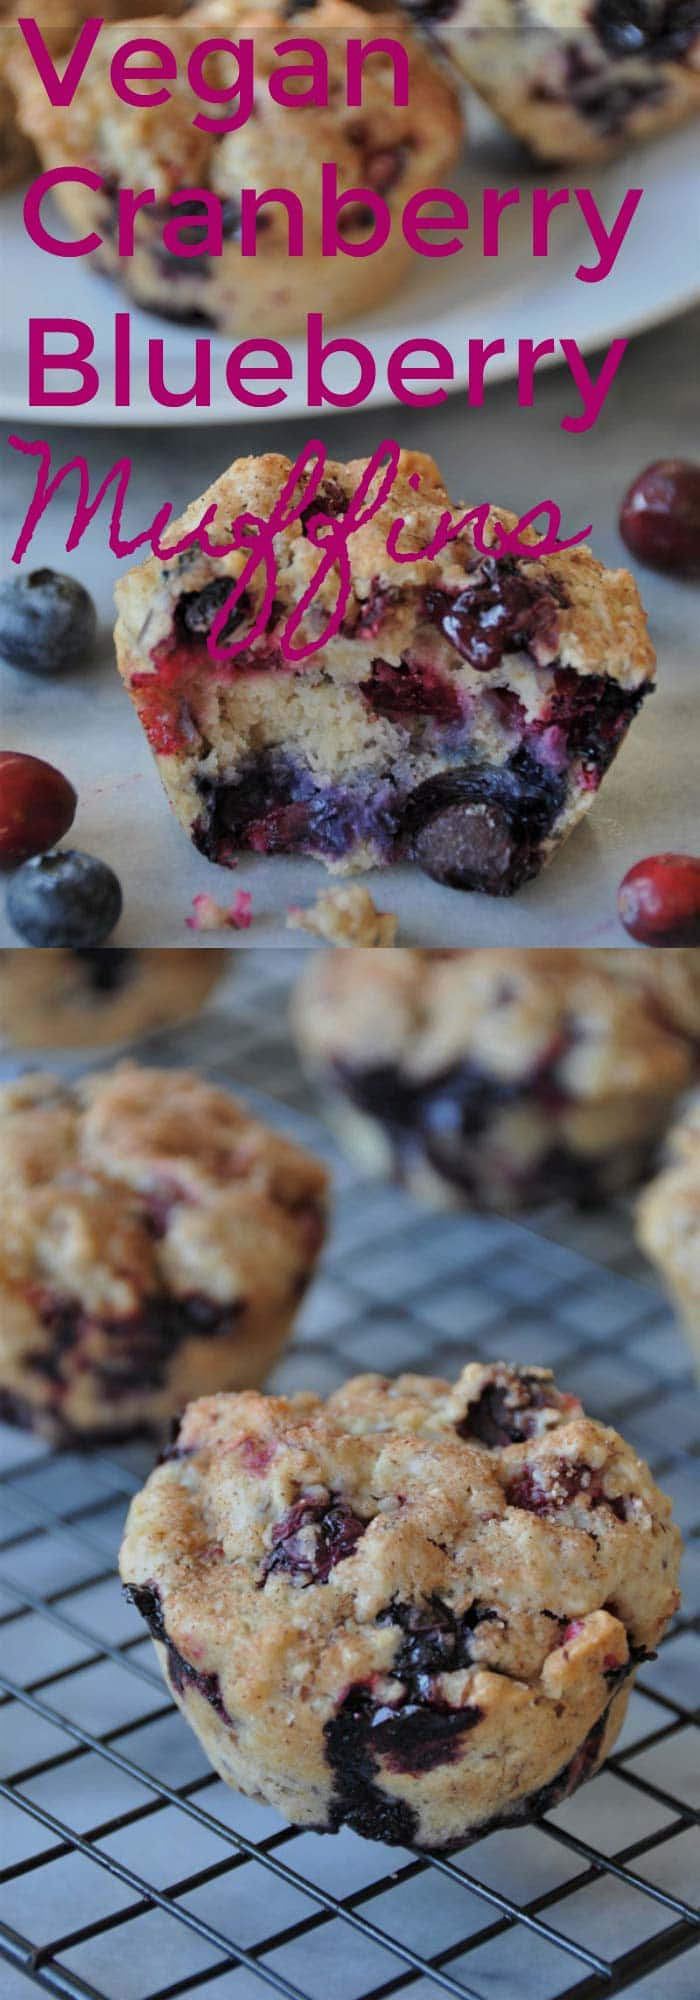 Pinterest pin for vegan cranberry blueberry muffins with a picture of the muffins cooling on a wire rack and one with a bite out of it.